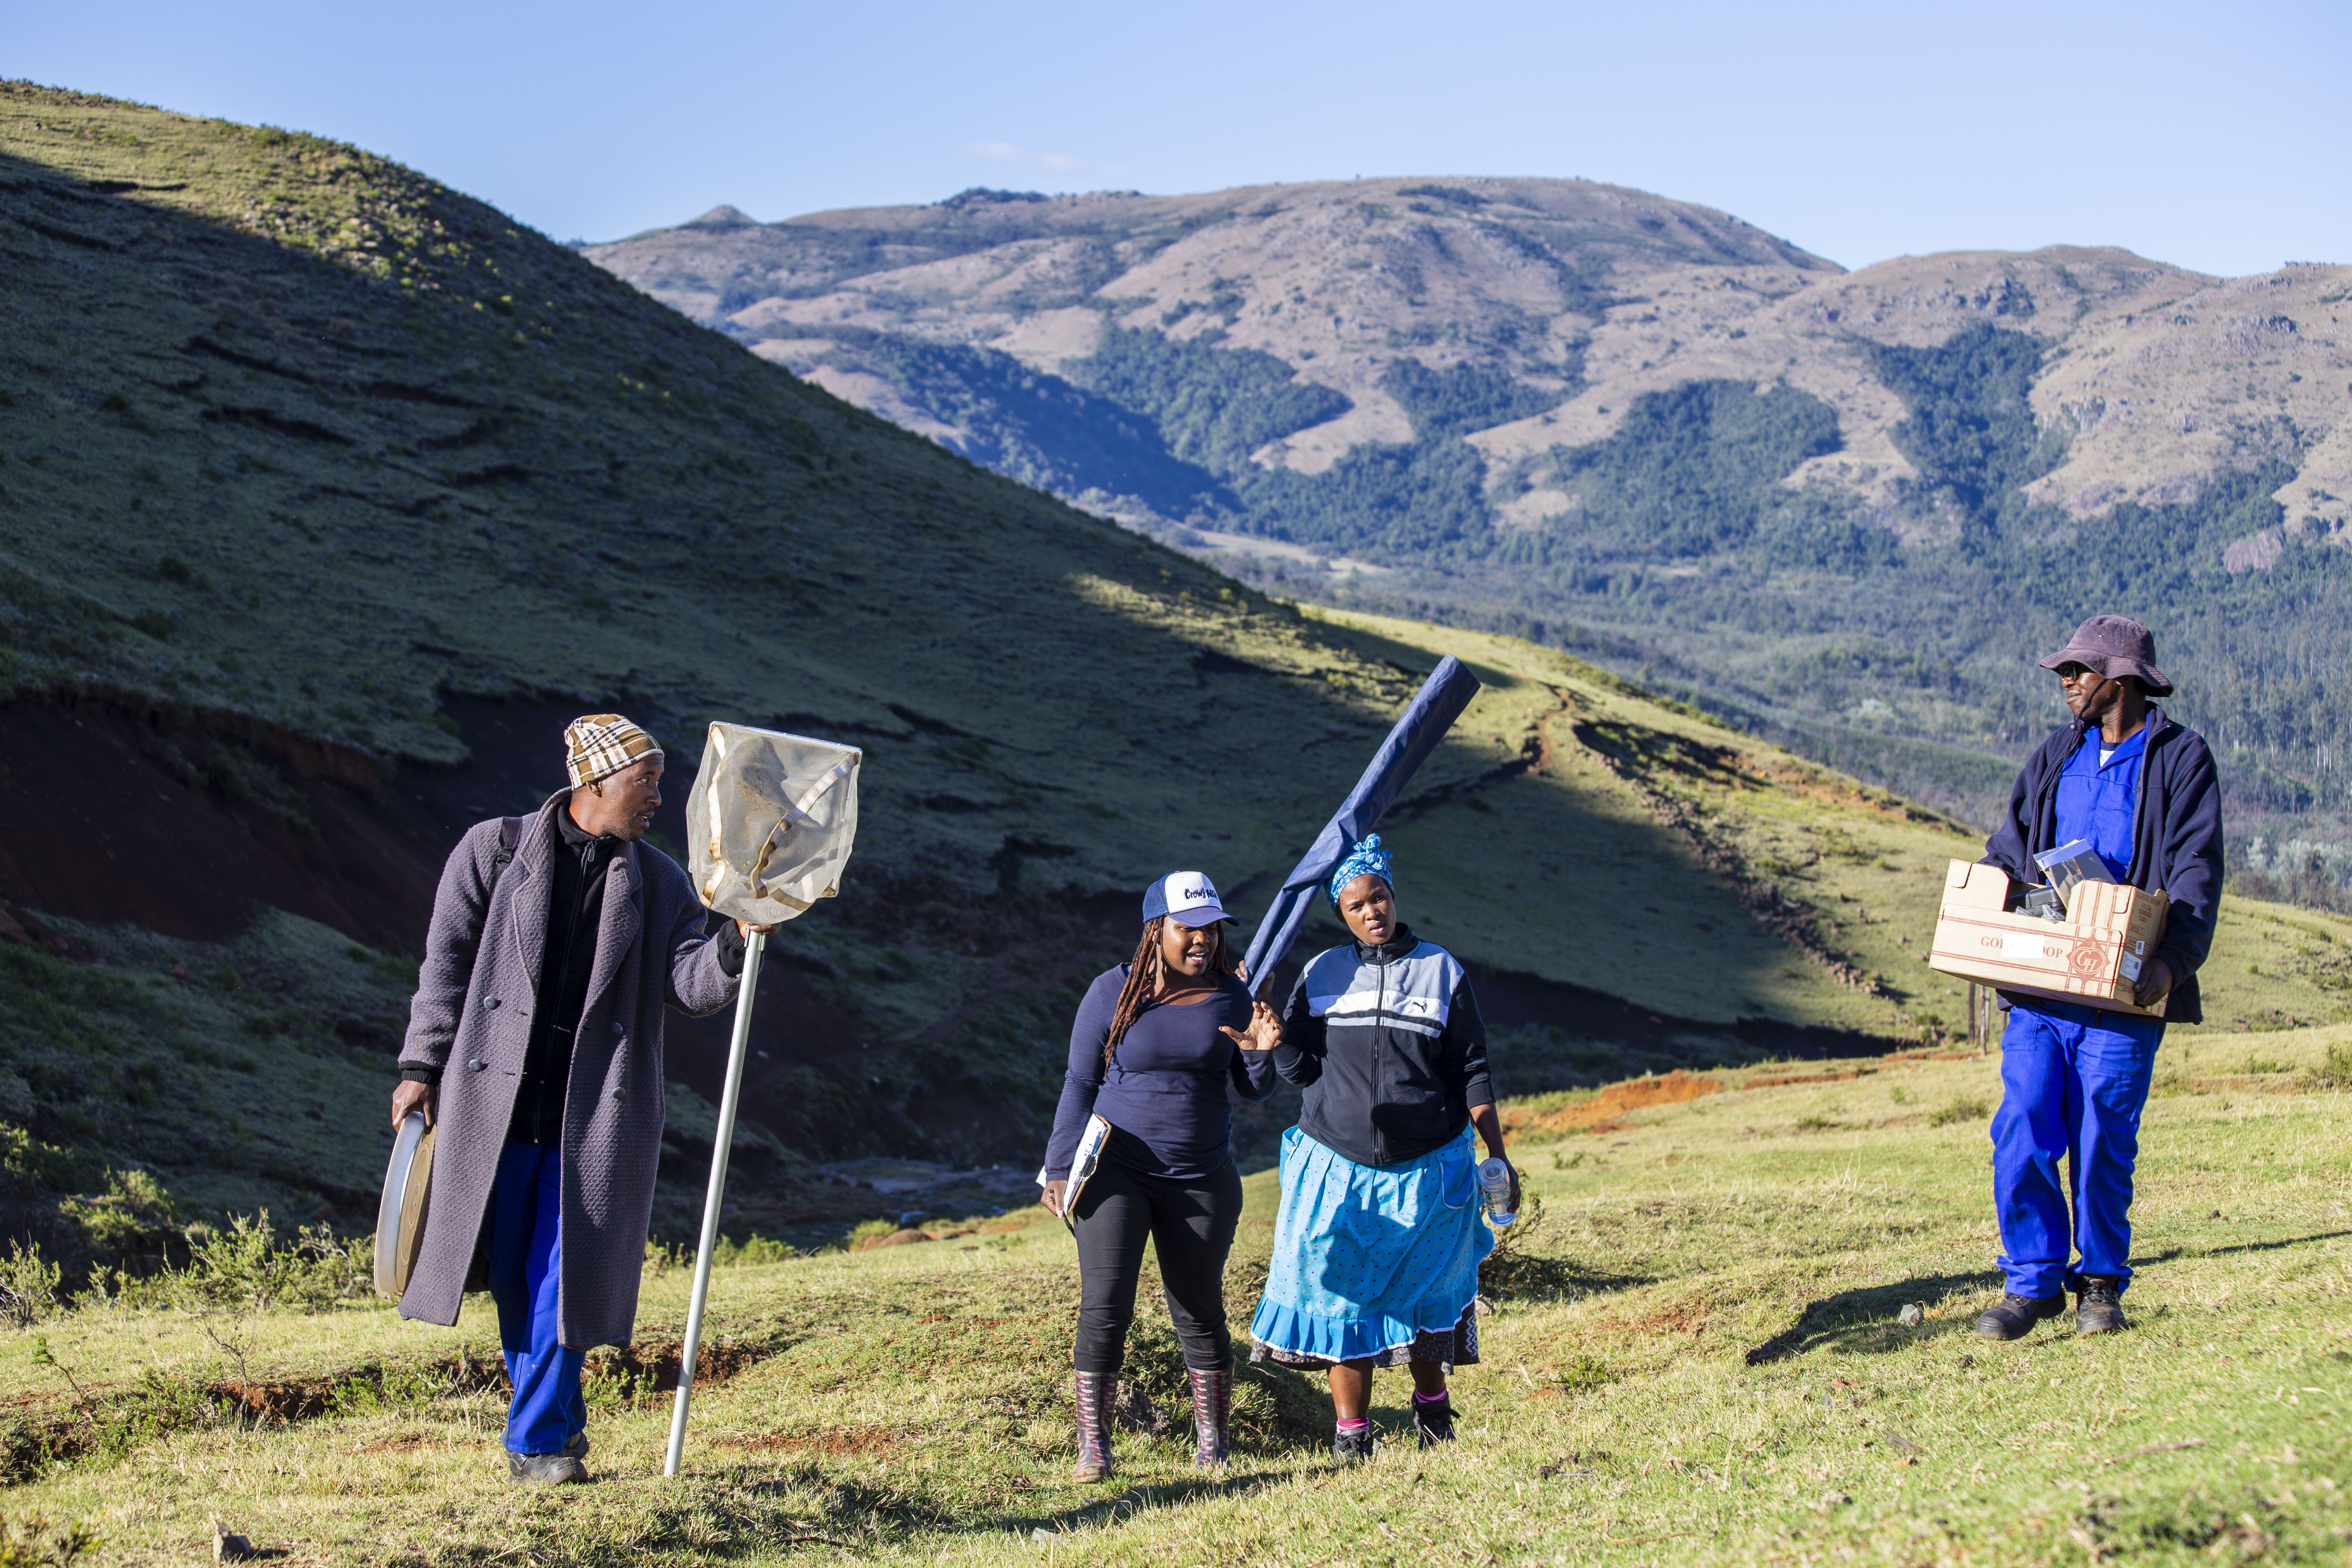 Four people holding tools walk along a hillside in front of a mountainous background.